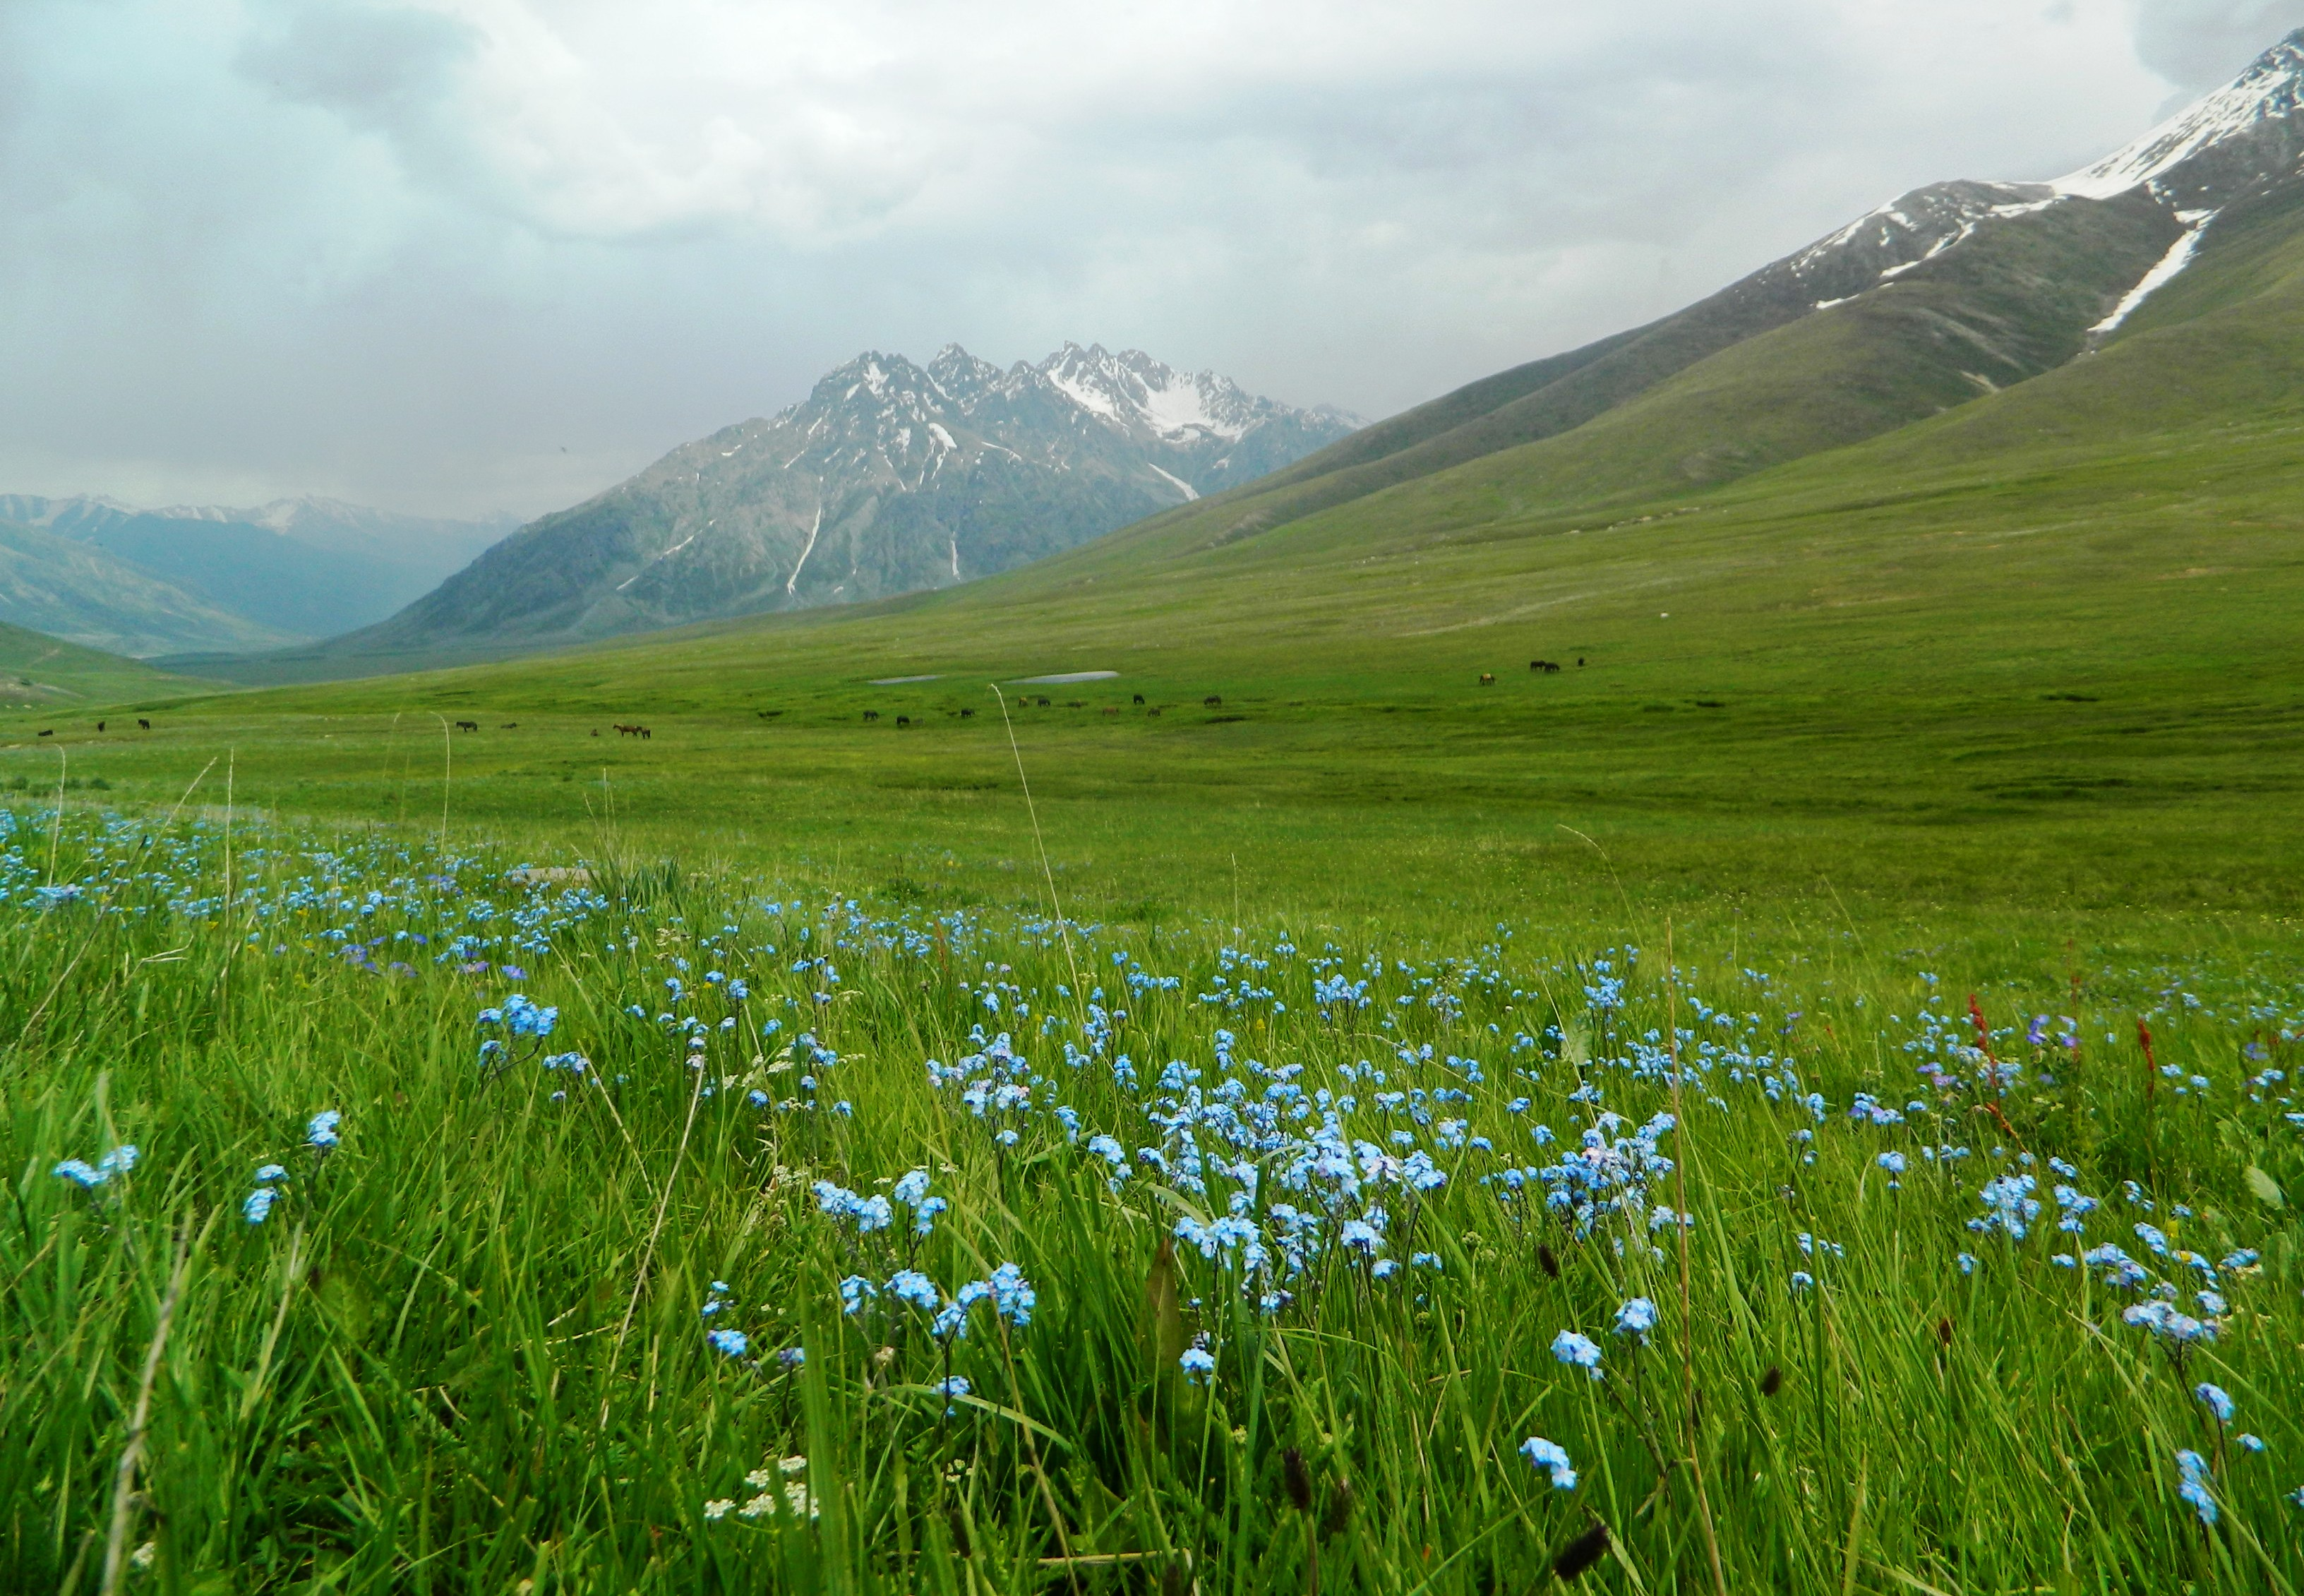 WWF – Pakistan expresses concern over the proposed Deosai Festival